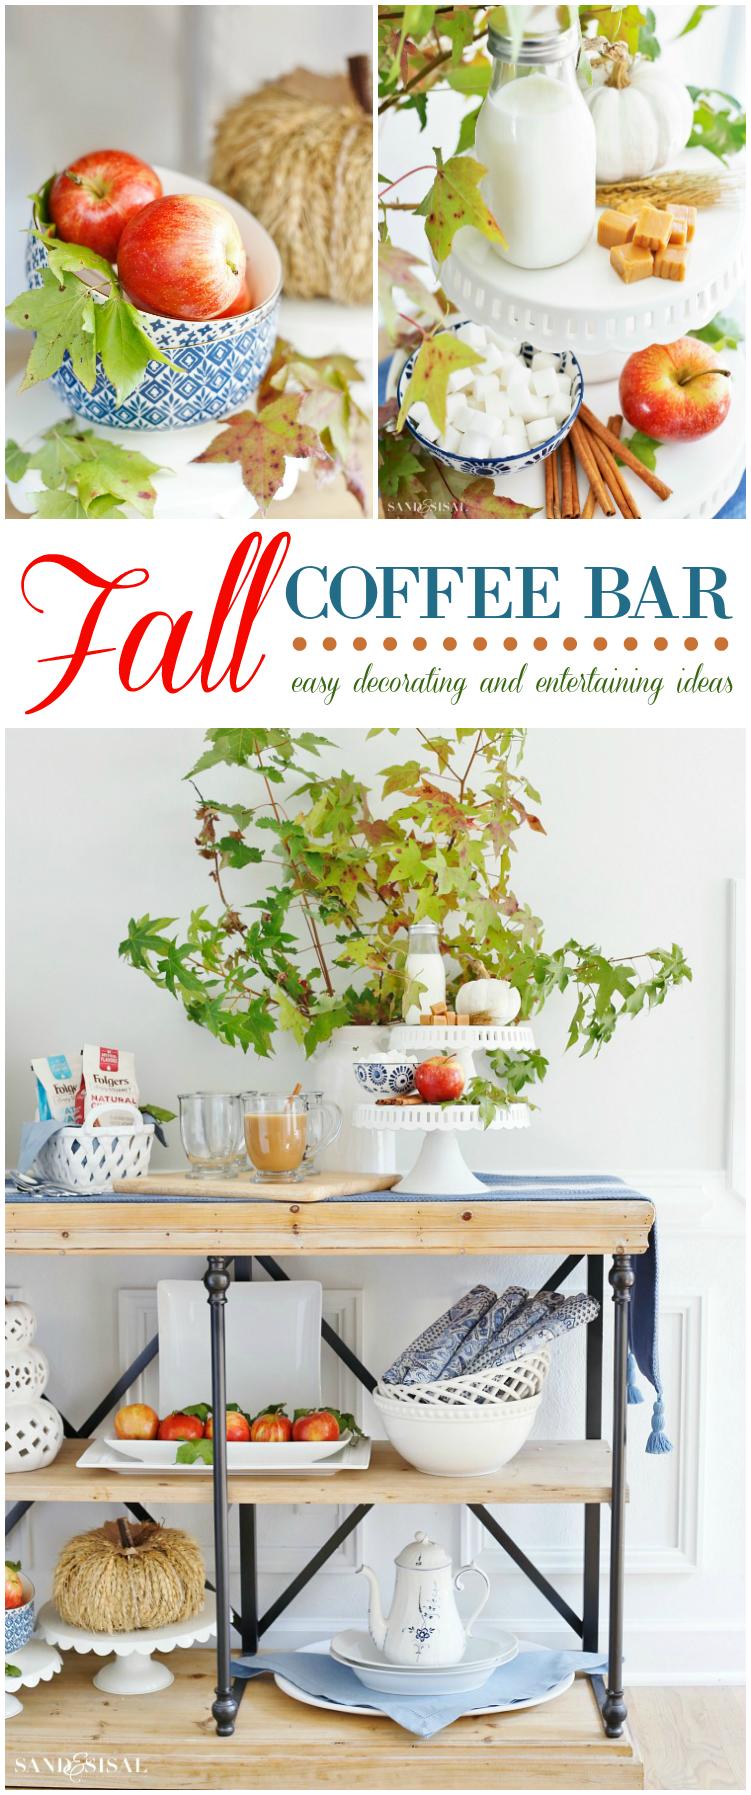 Fall Coffee Bar - Learn how to create a cute and festive fall coffee bar or coffee station, ready for entertaining or anytime you need to take a coffee break. Easy fall decorating tips!